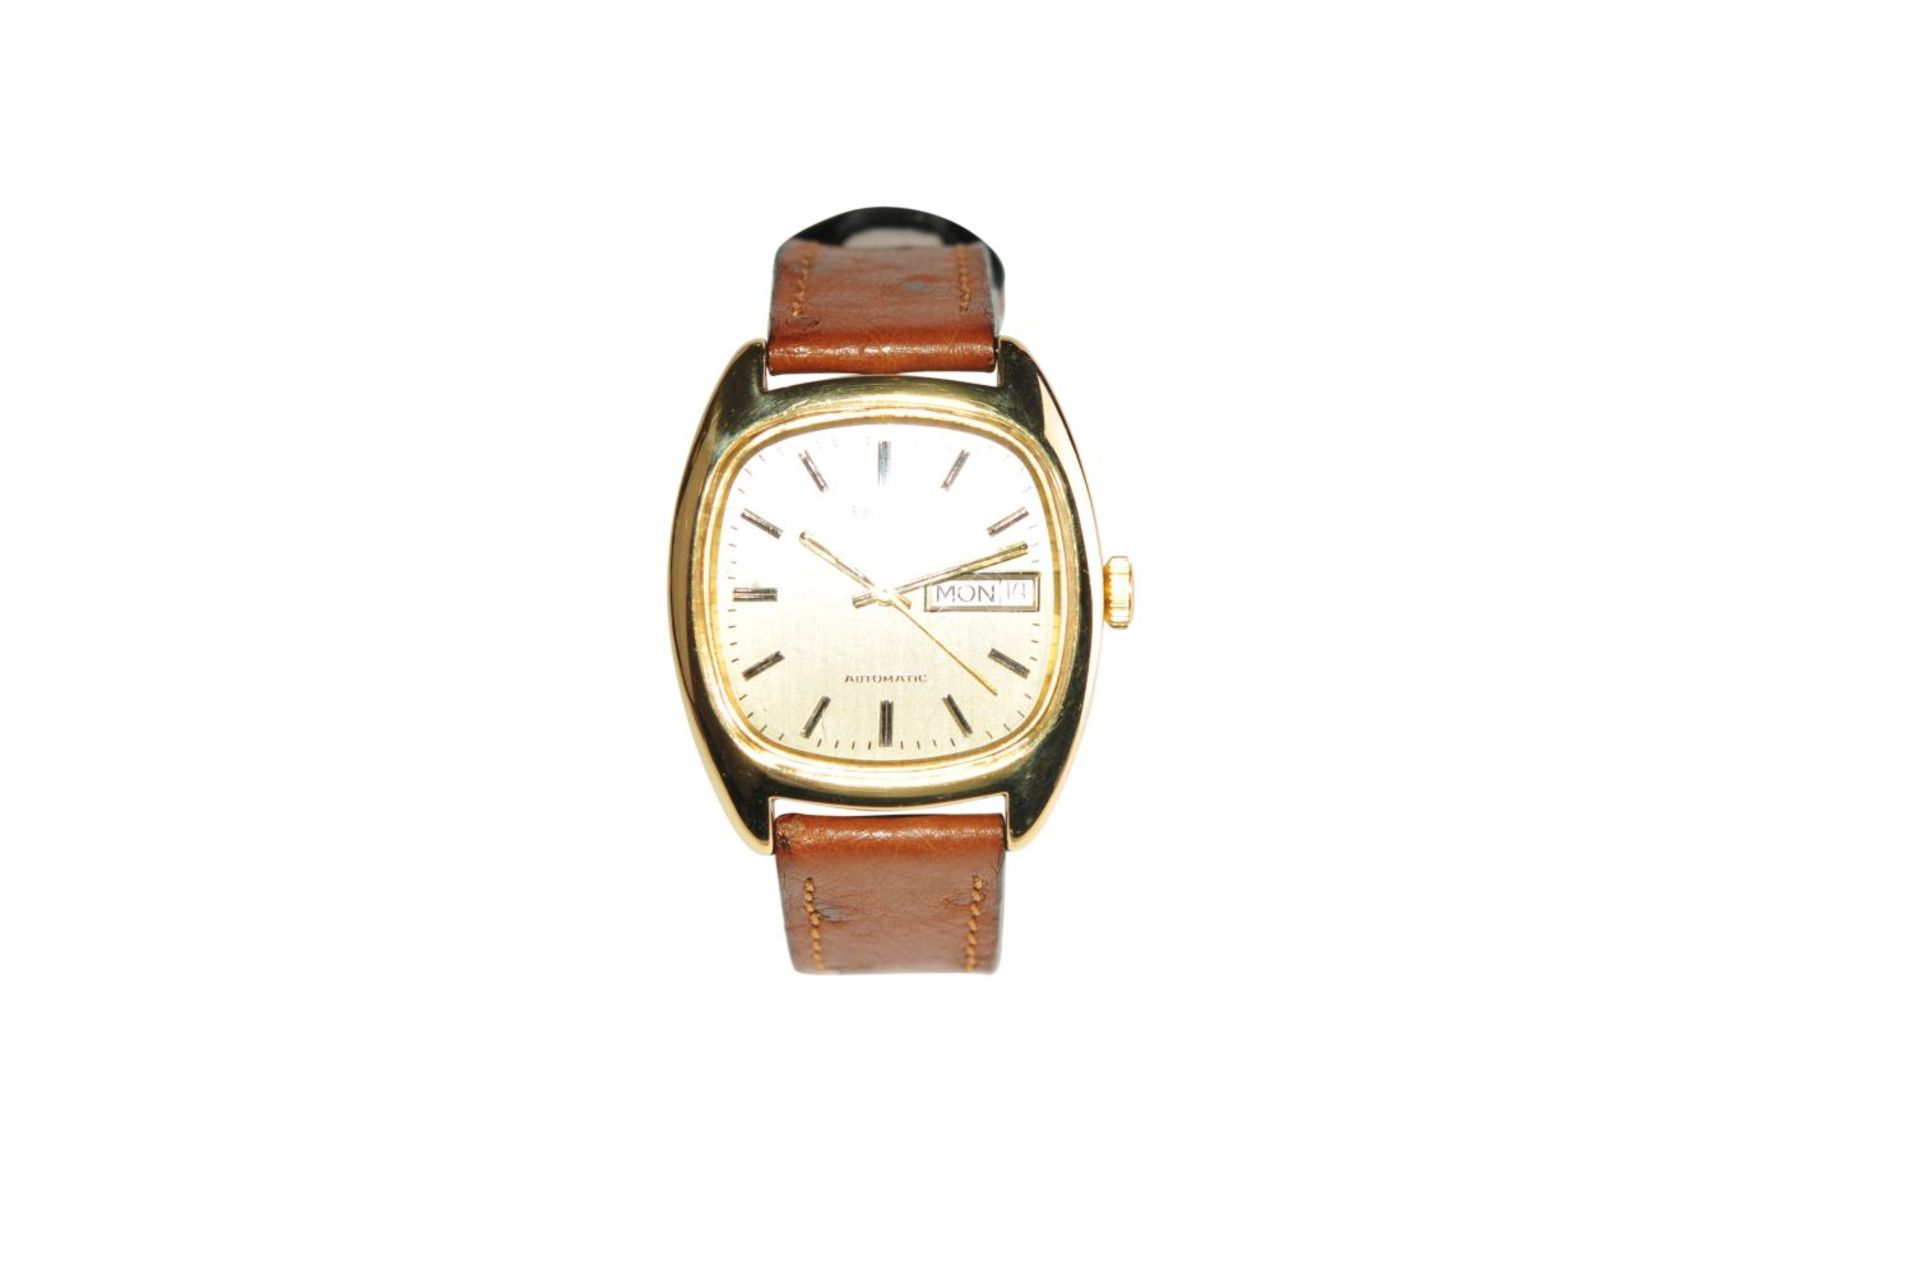 Los 41 - BULOVASwiss gold watch 41 mm x 34 mm 18 Kt solid case automatic day date with leather strap